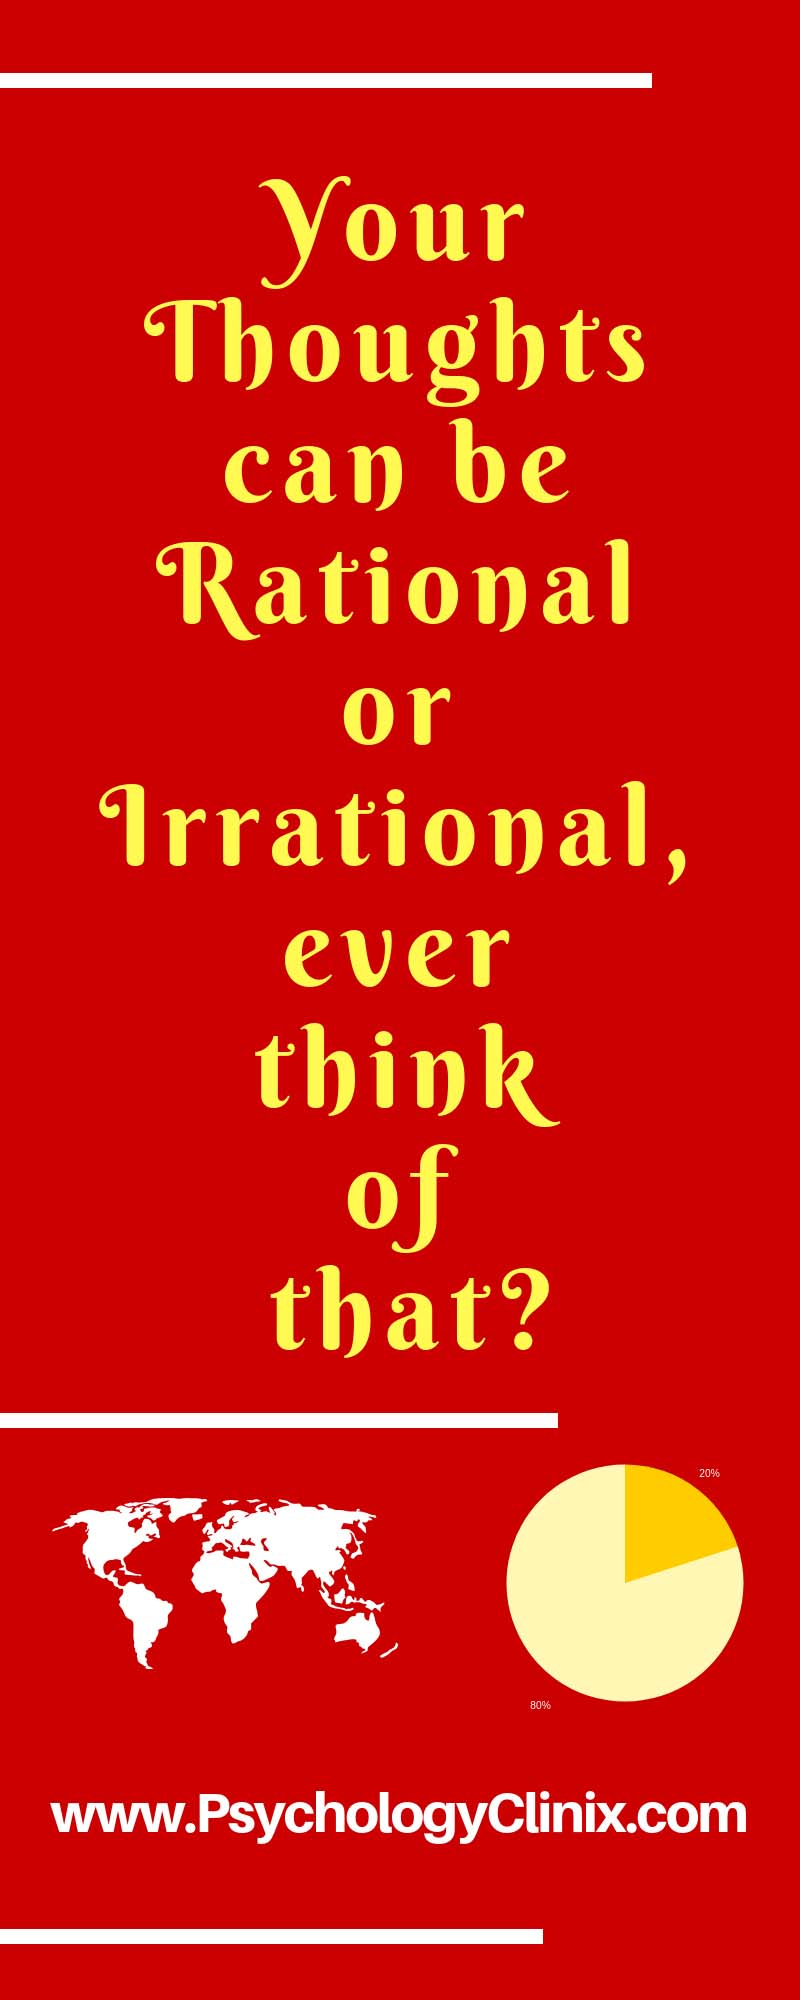 Your thoughts can be Rational or Irrational ever think of that